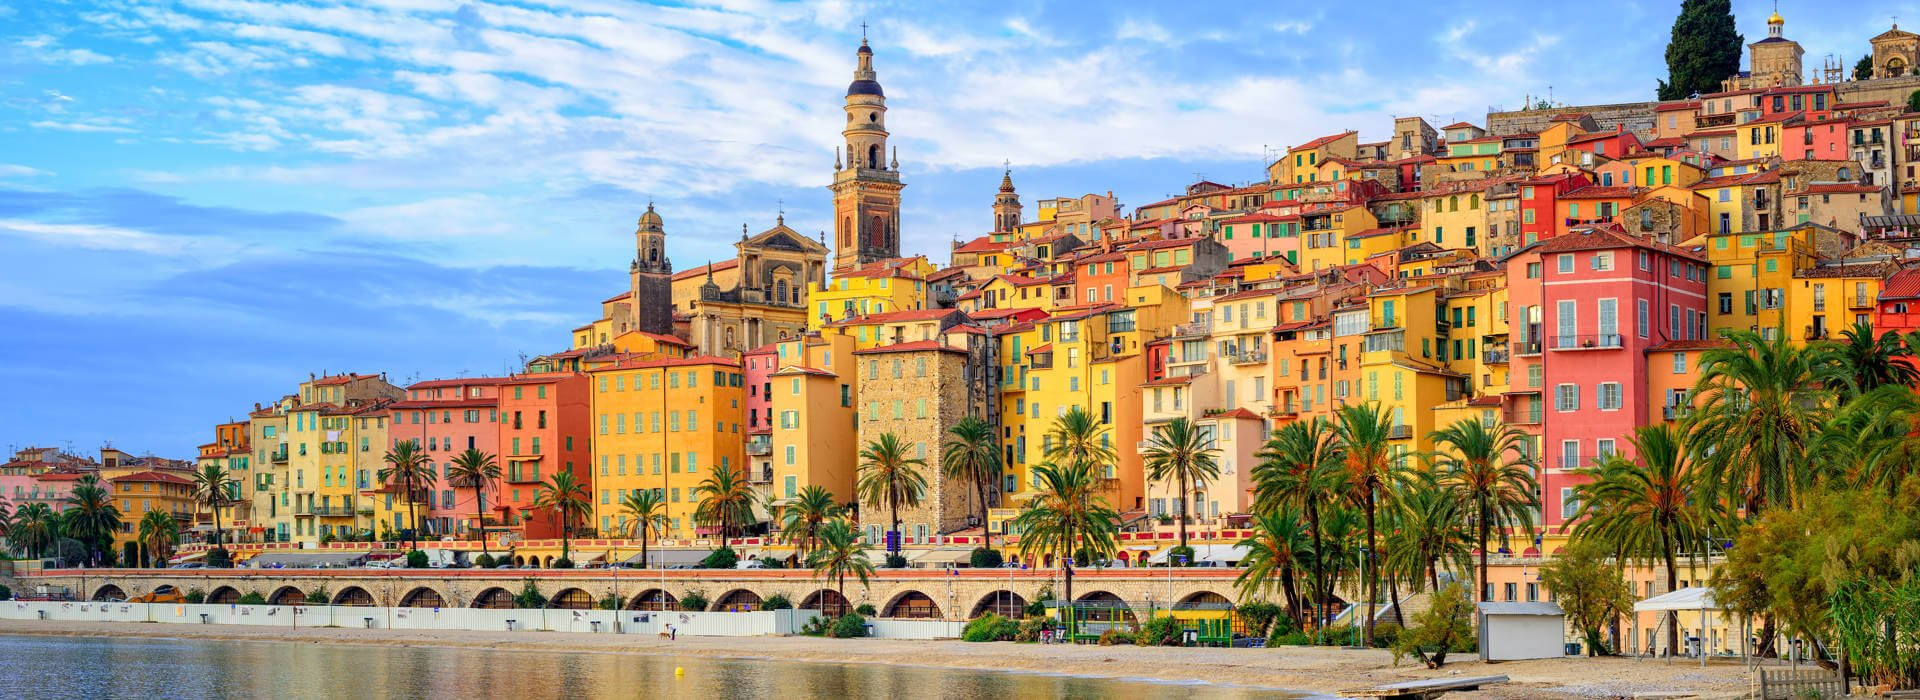 View of Menton on the French Riviera close to Italy